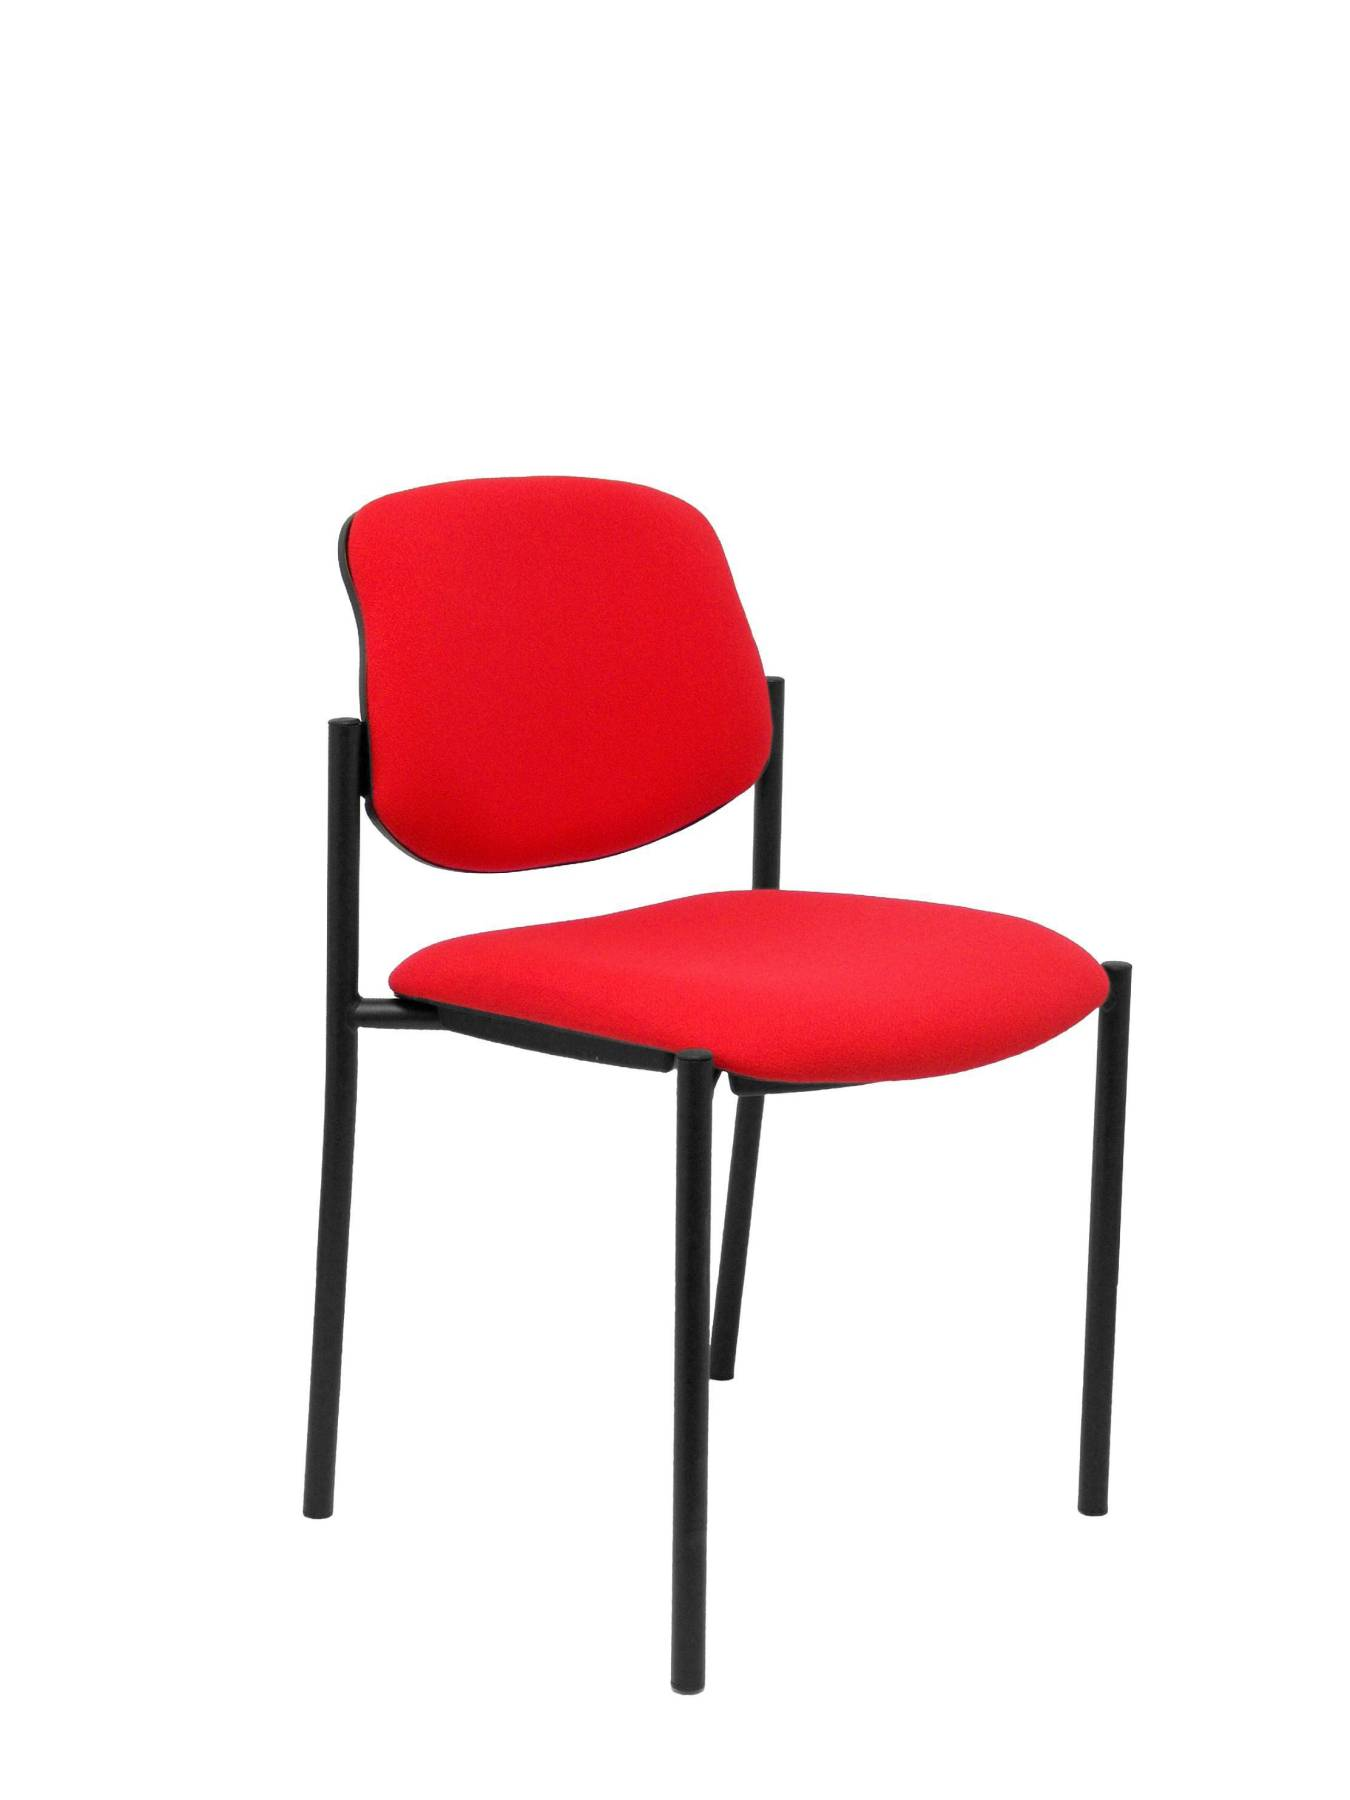 Visitor Chair 4's Topsy And Estructrua Negro-up Seat And Backstop Upholstered In BALI Tissue Red Color TAPHOLE AND CRESP